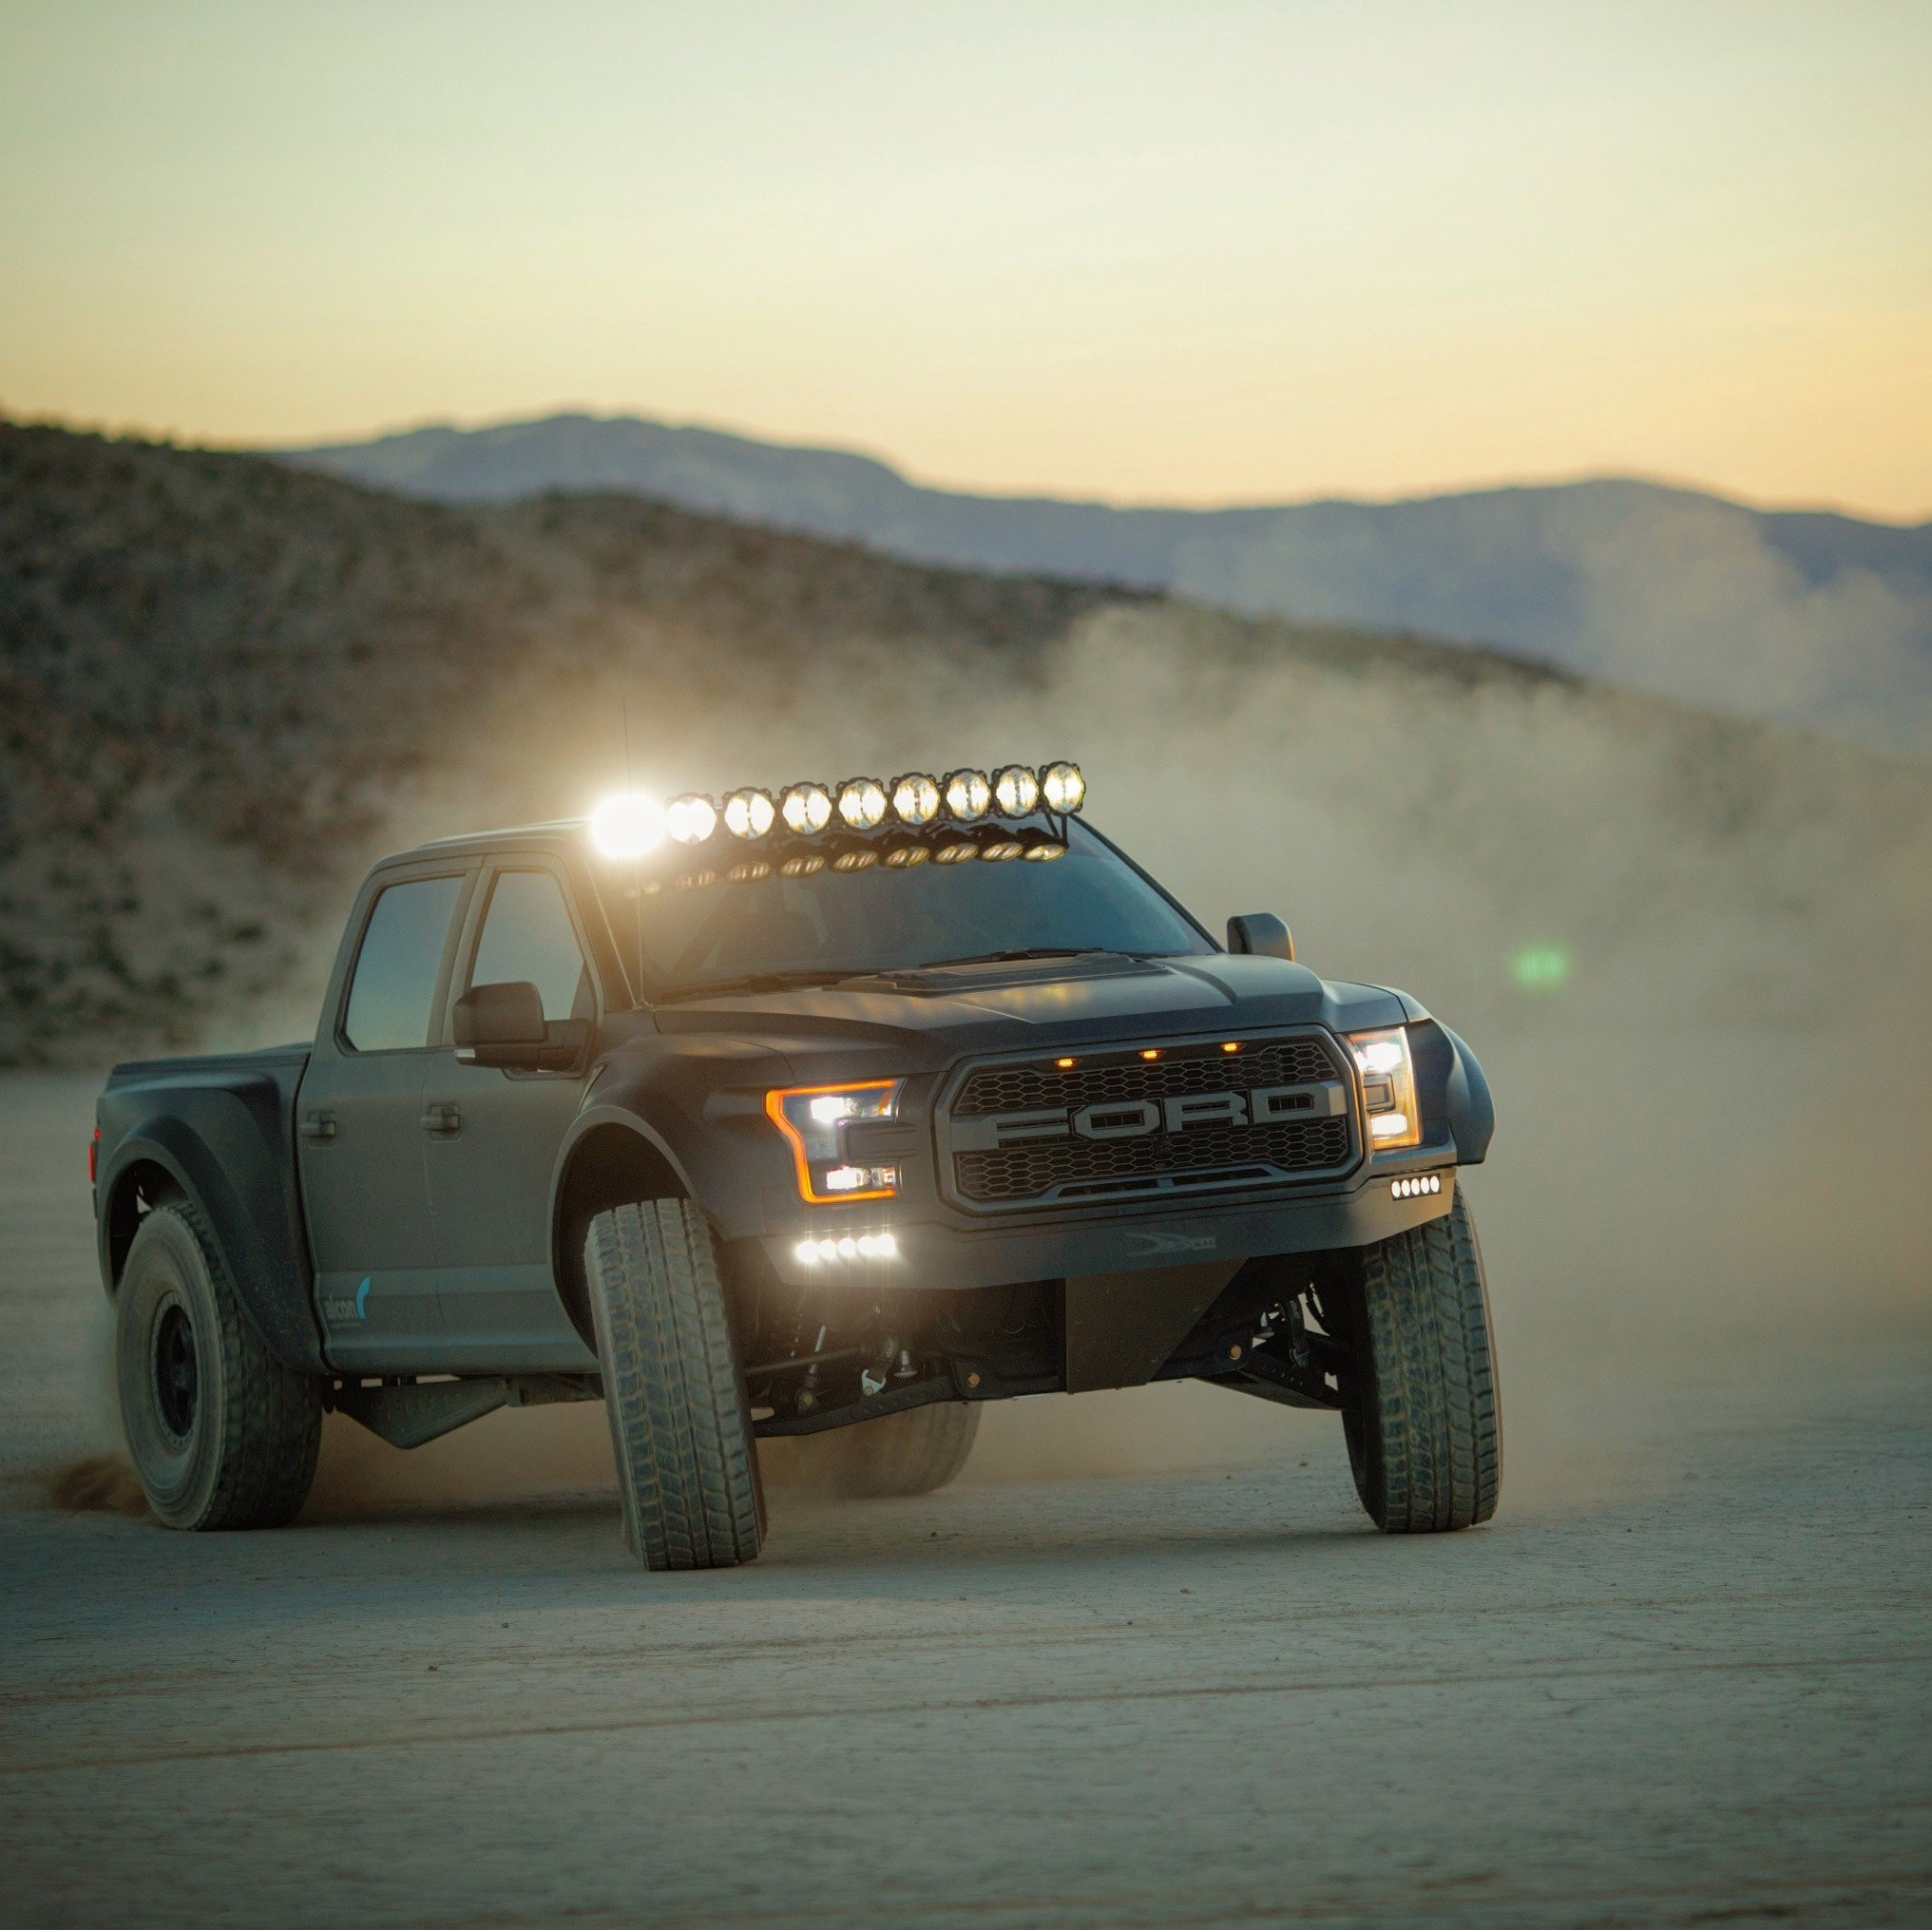 Kc Lights Wiring Diagram Page 2 And Schematics Light A 500 Diagrams Source Gravity Led Pro6 2017 18 Ford F 150 Raptor 9 Hilites From